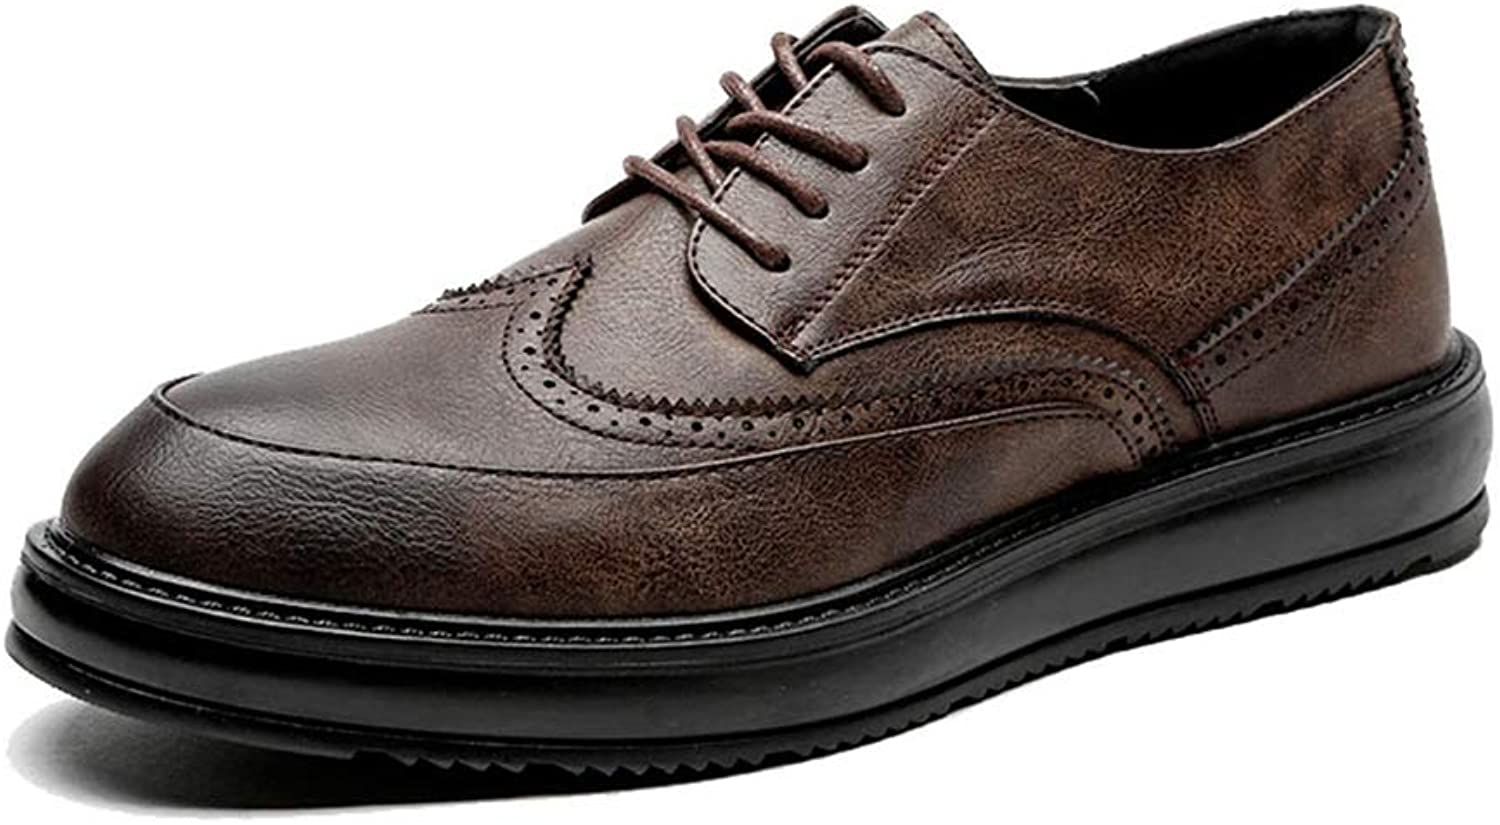 SRY-shoes Men's Simple Fashion Oxford Casual Classic Carvings Breathe Comfortably Outsole Brogue shoes(Patent Leather Optional)